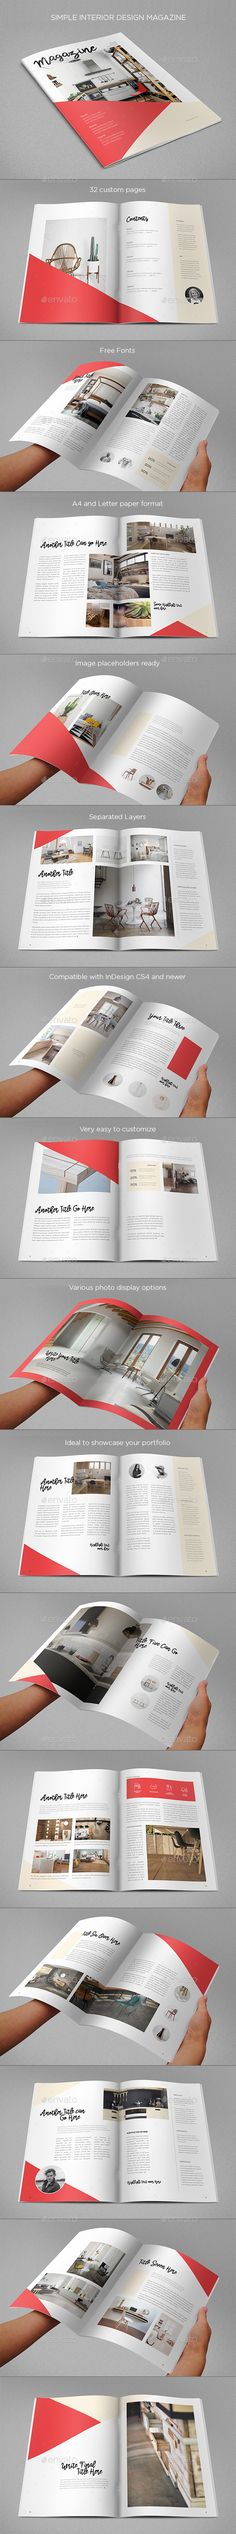 Simple Interior Design Magazine by AbraDesign SIMPLE INTERIOR DESIGN MAGAZINEClean, modern and simple design ideal for any purposes. Very easy to adapt and customize. DETAILS